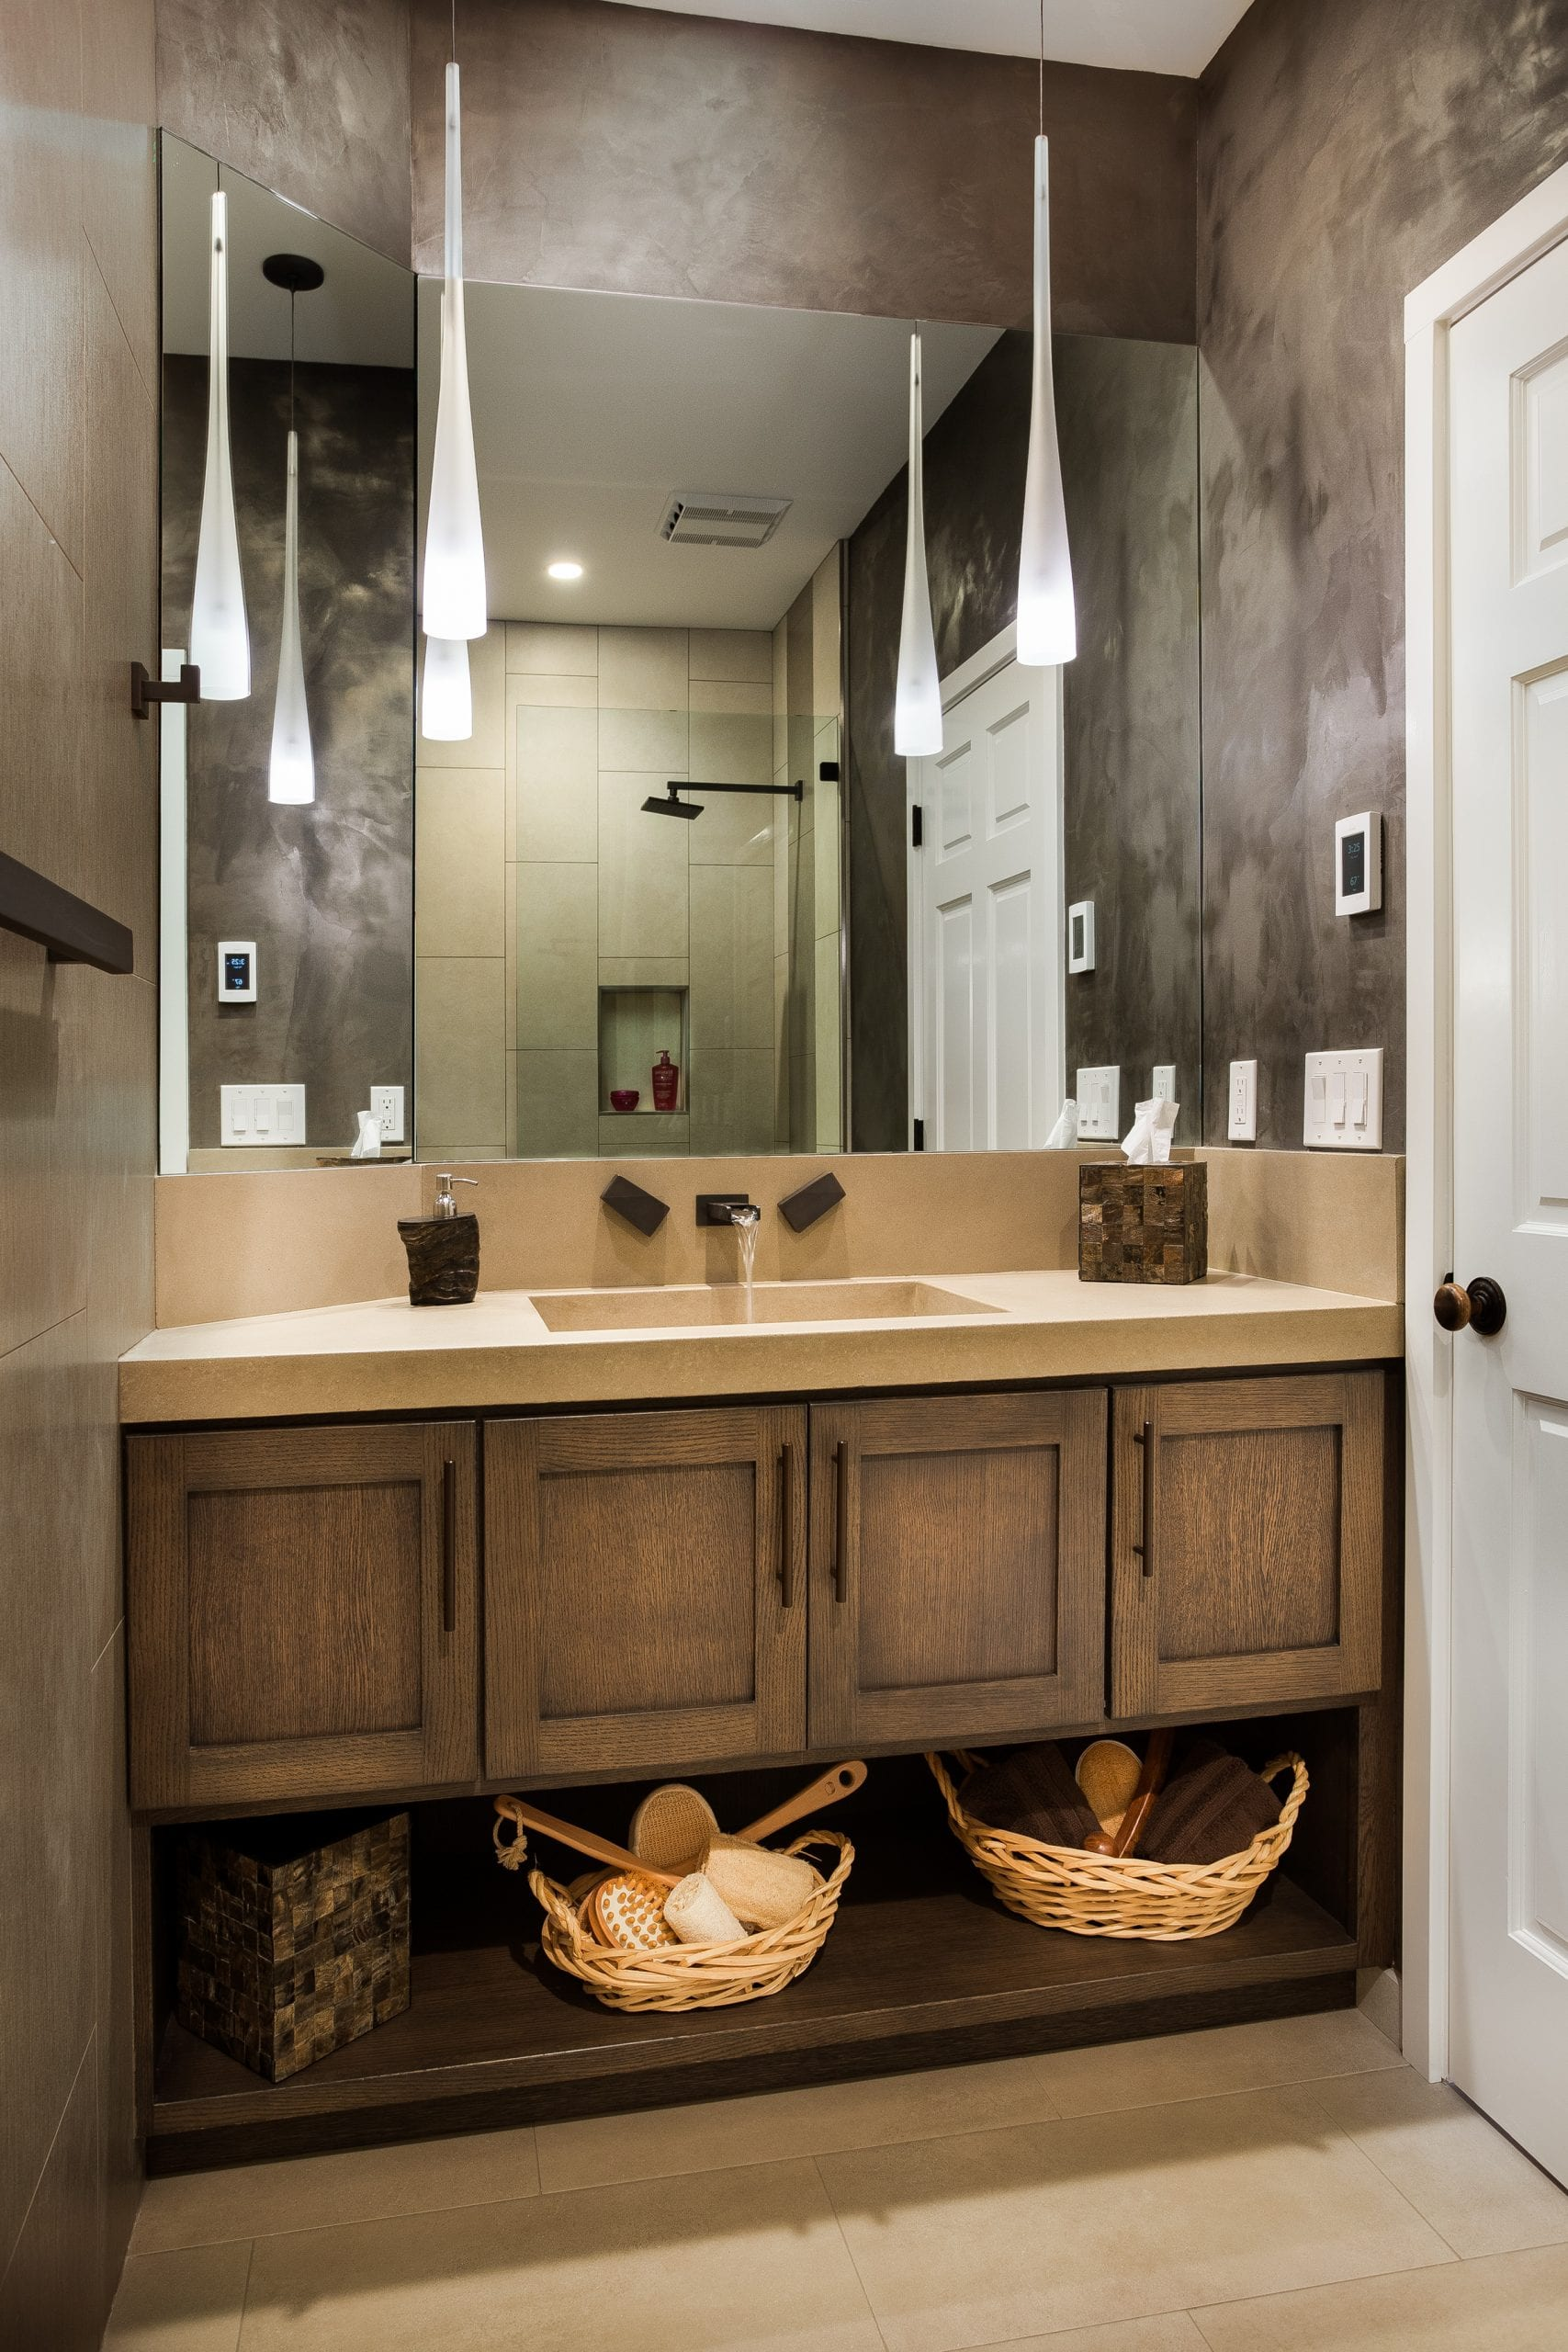 Bathroom counter with baskets underneath for storage